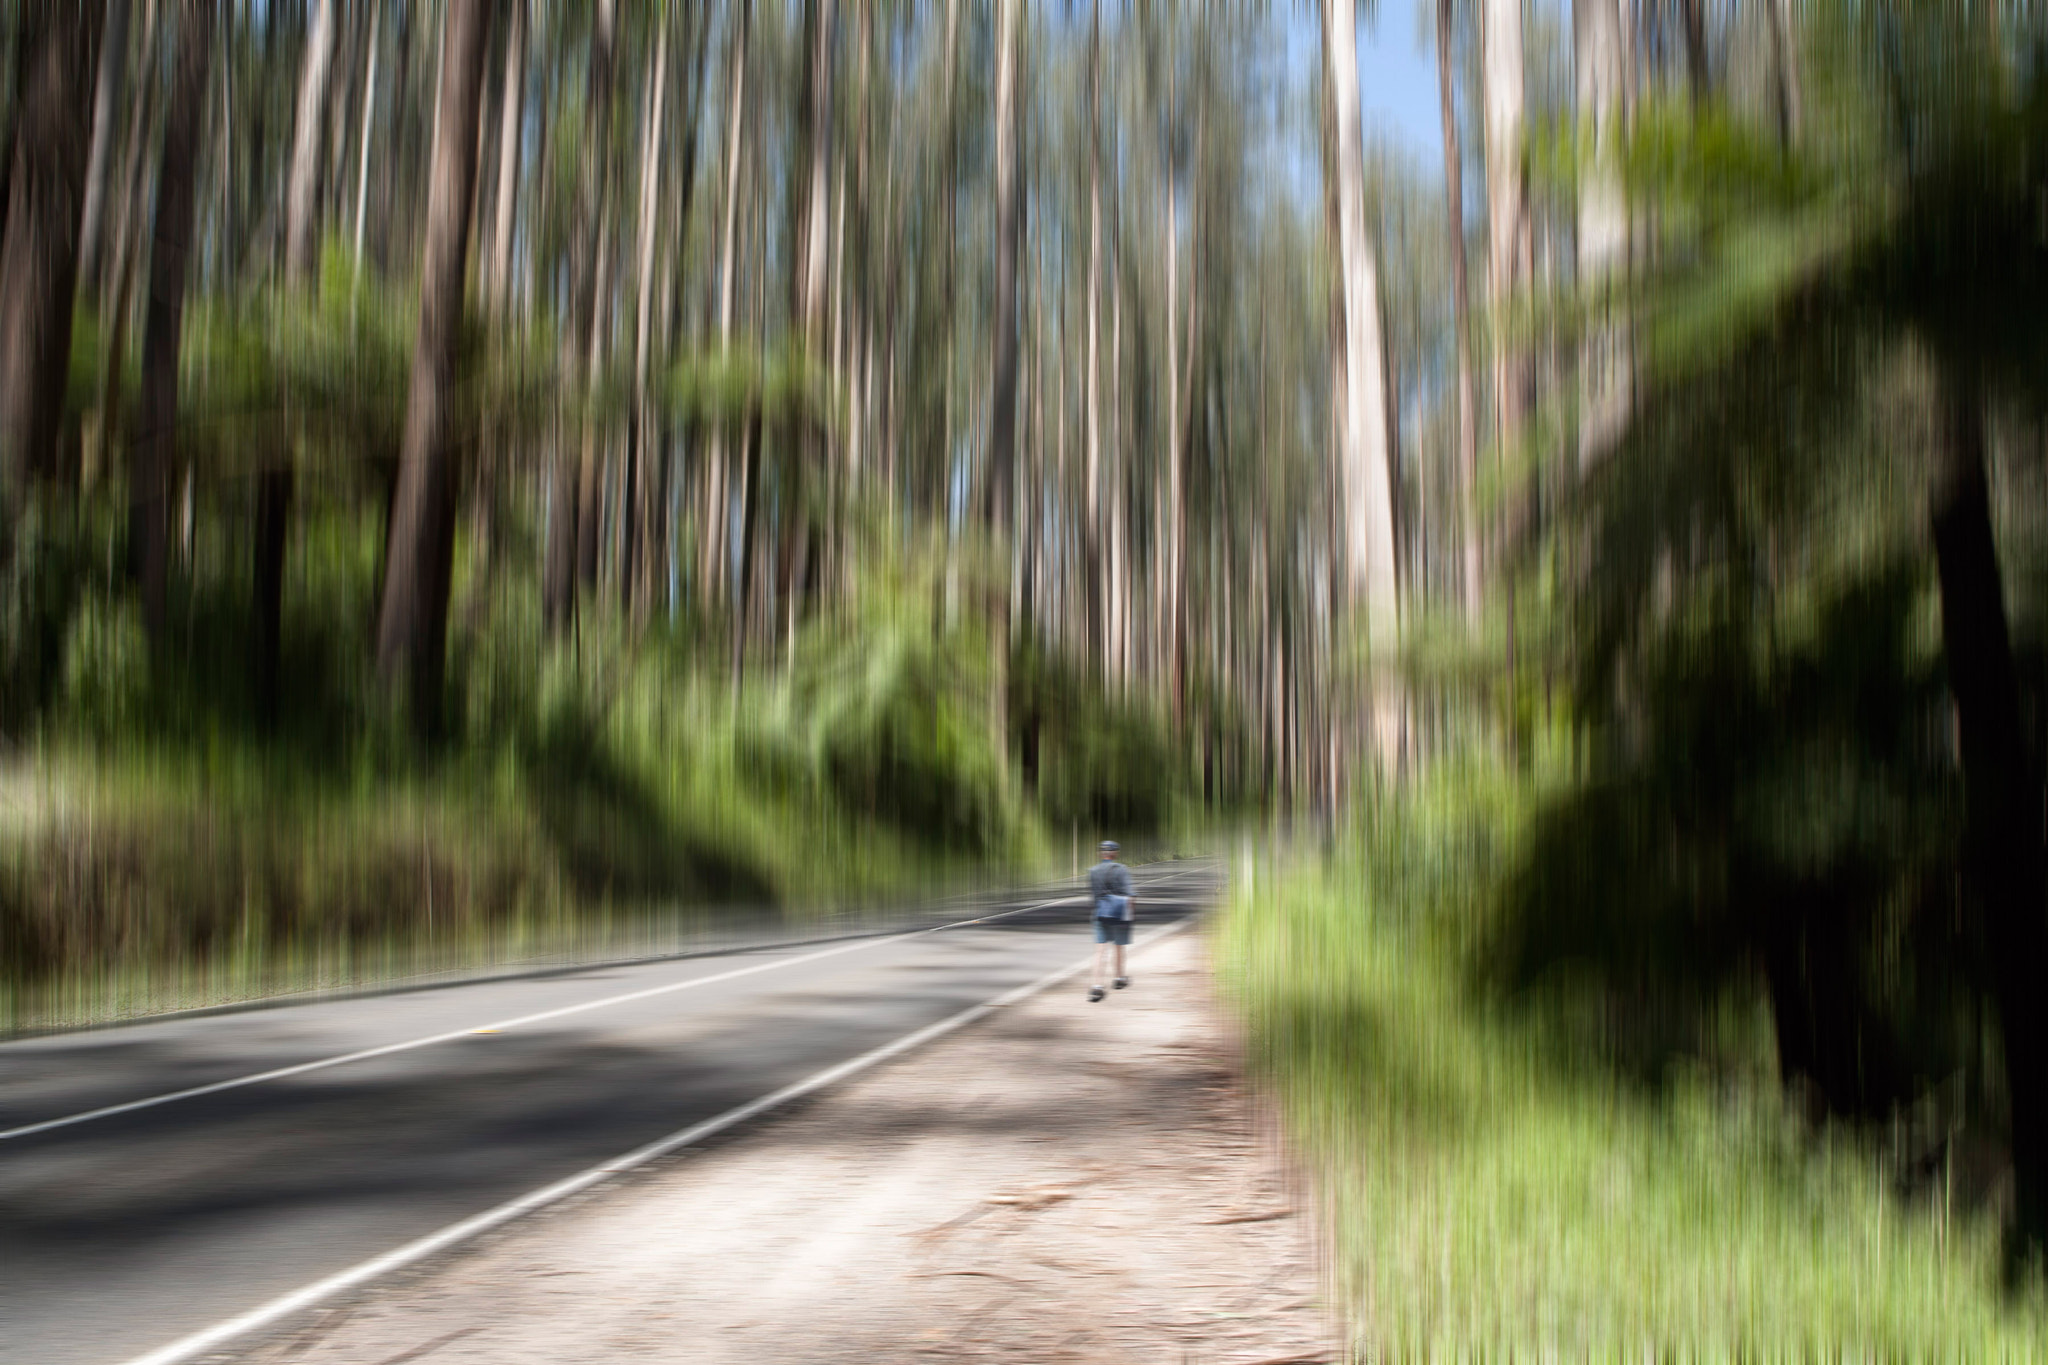 Photograph The Dreamer by Margaret Morgan on 500px